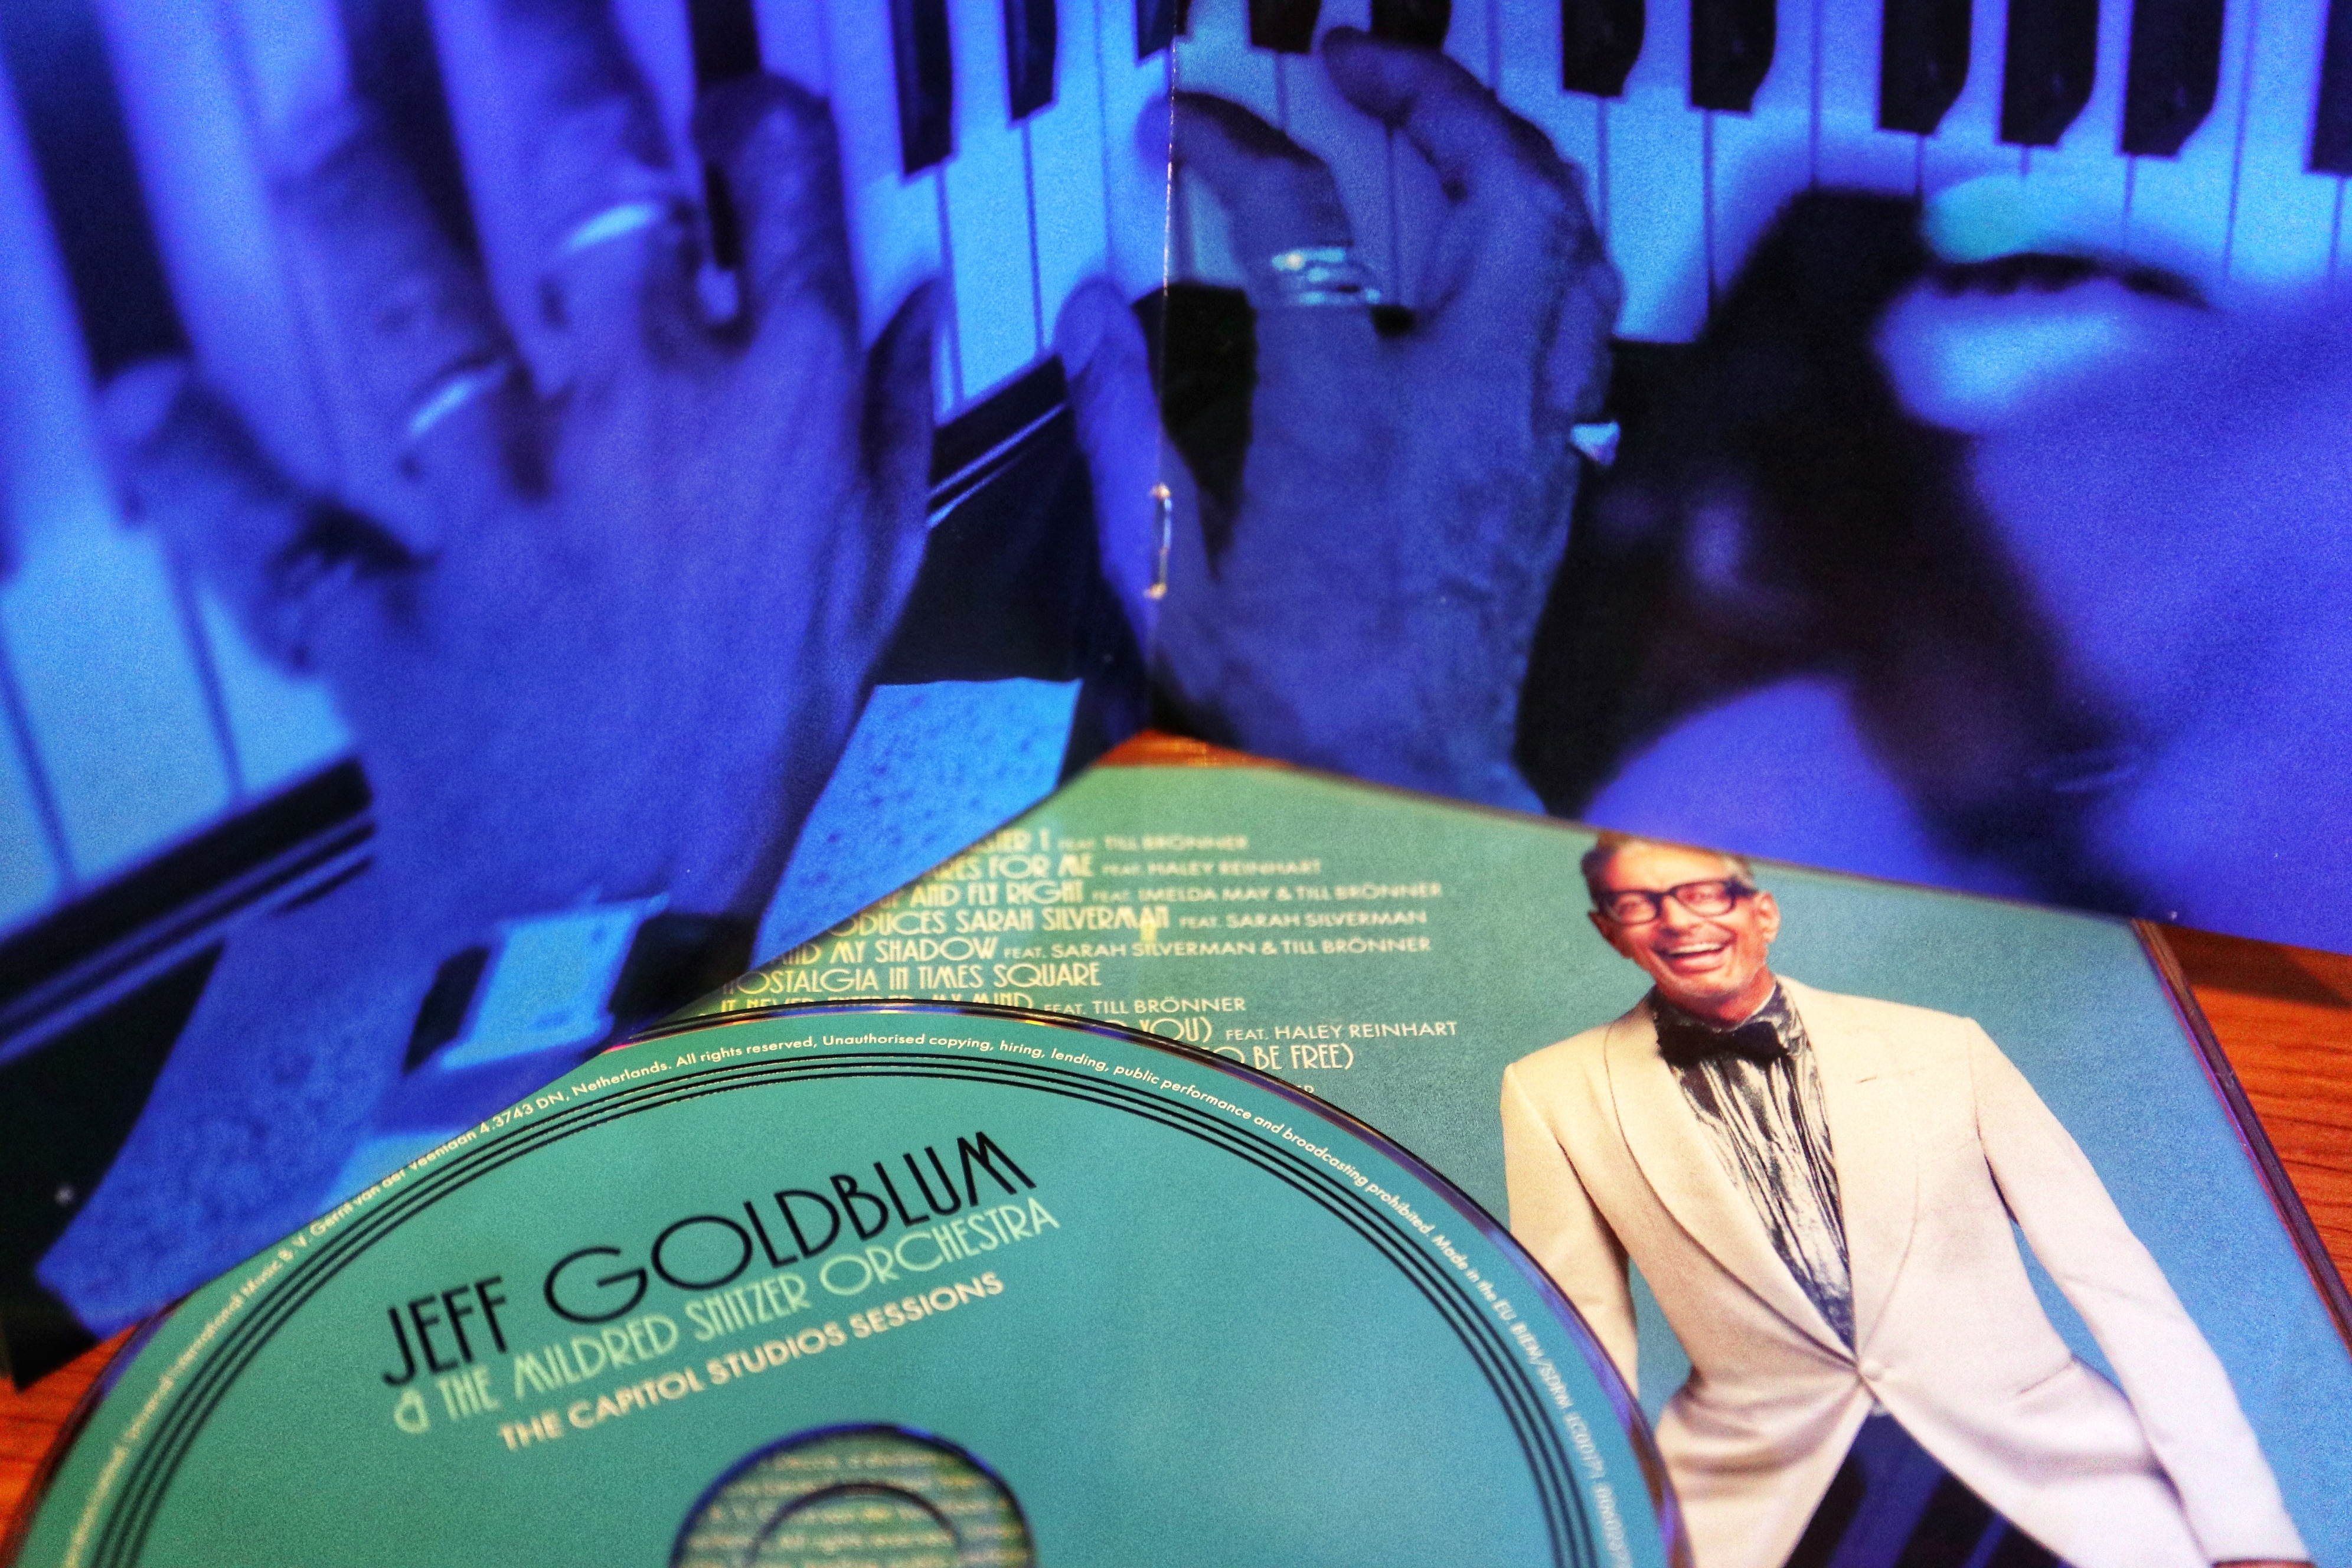 Jeff Goldblum CD Booklet